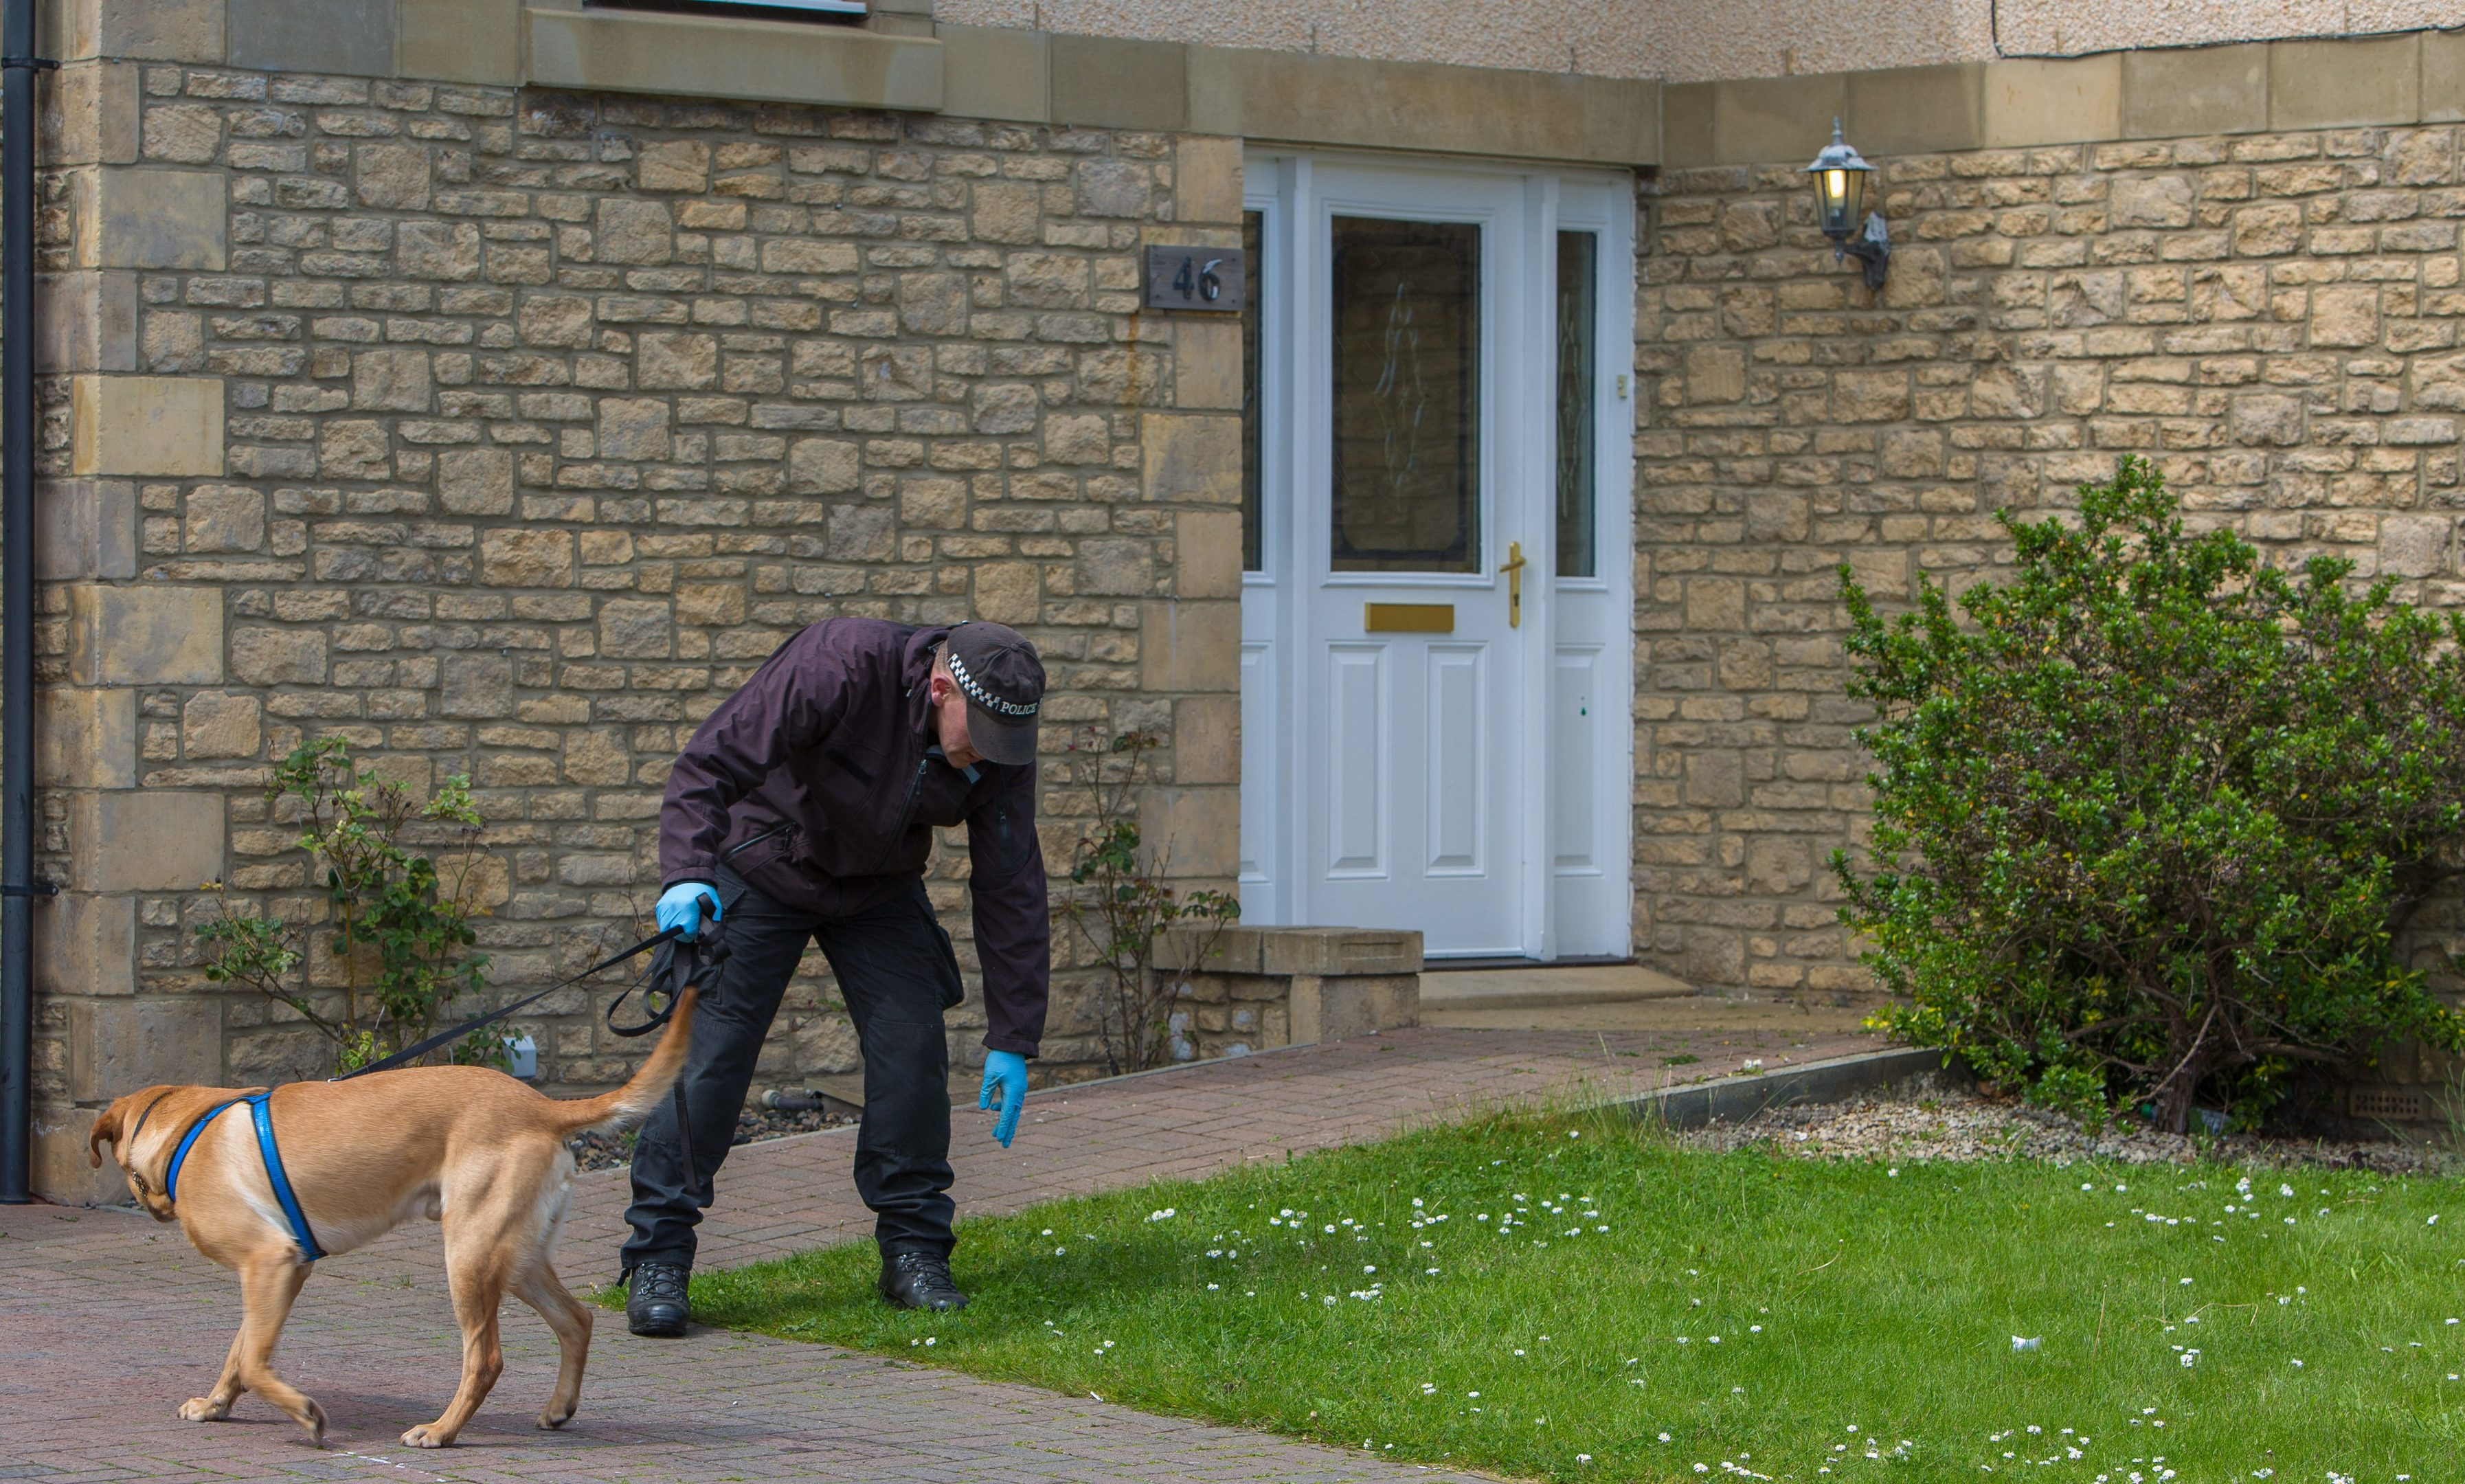 Bullet holes were visible in the front door of the property as the sniffer dog looks for clues in the garden.